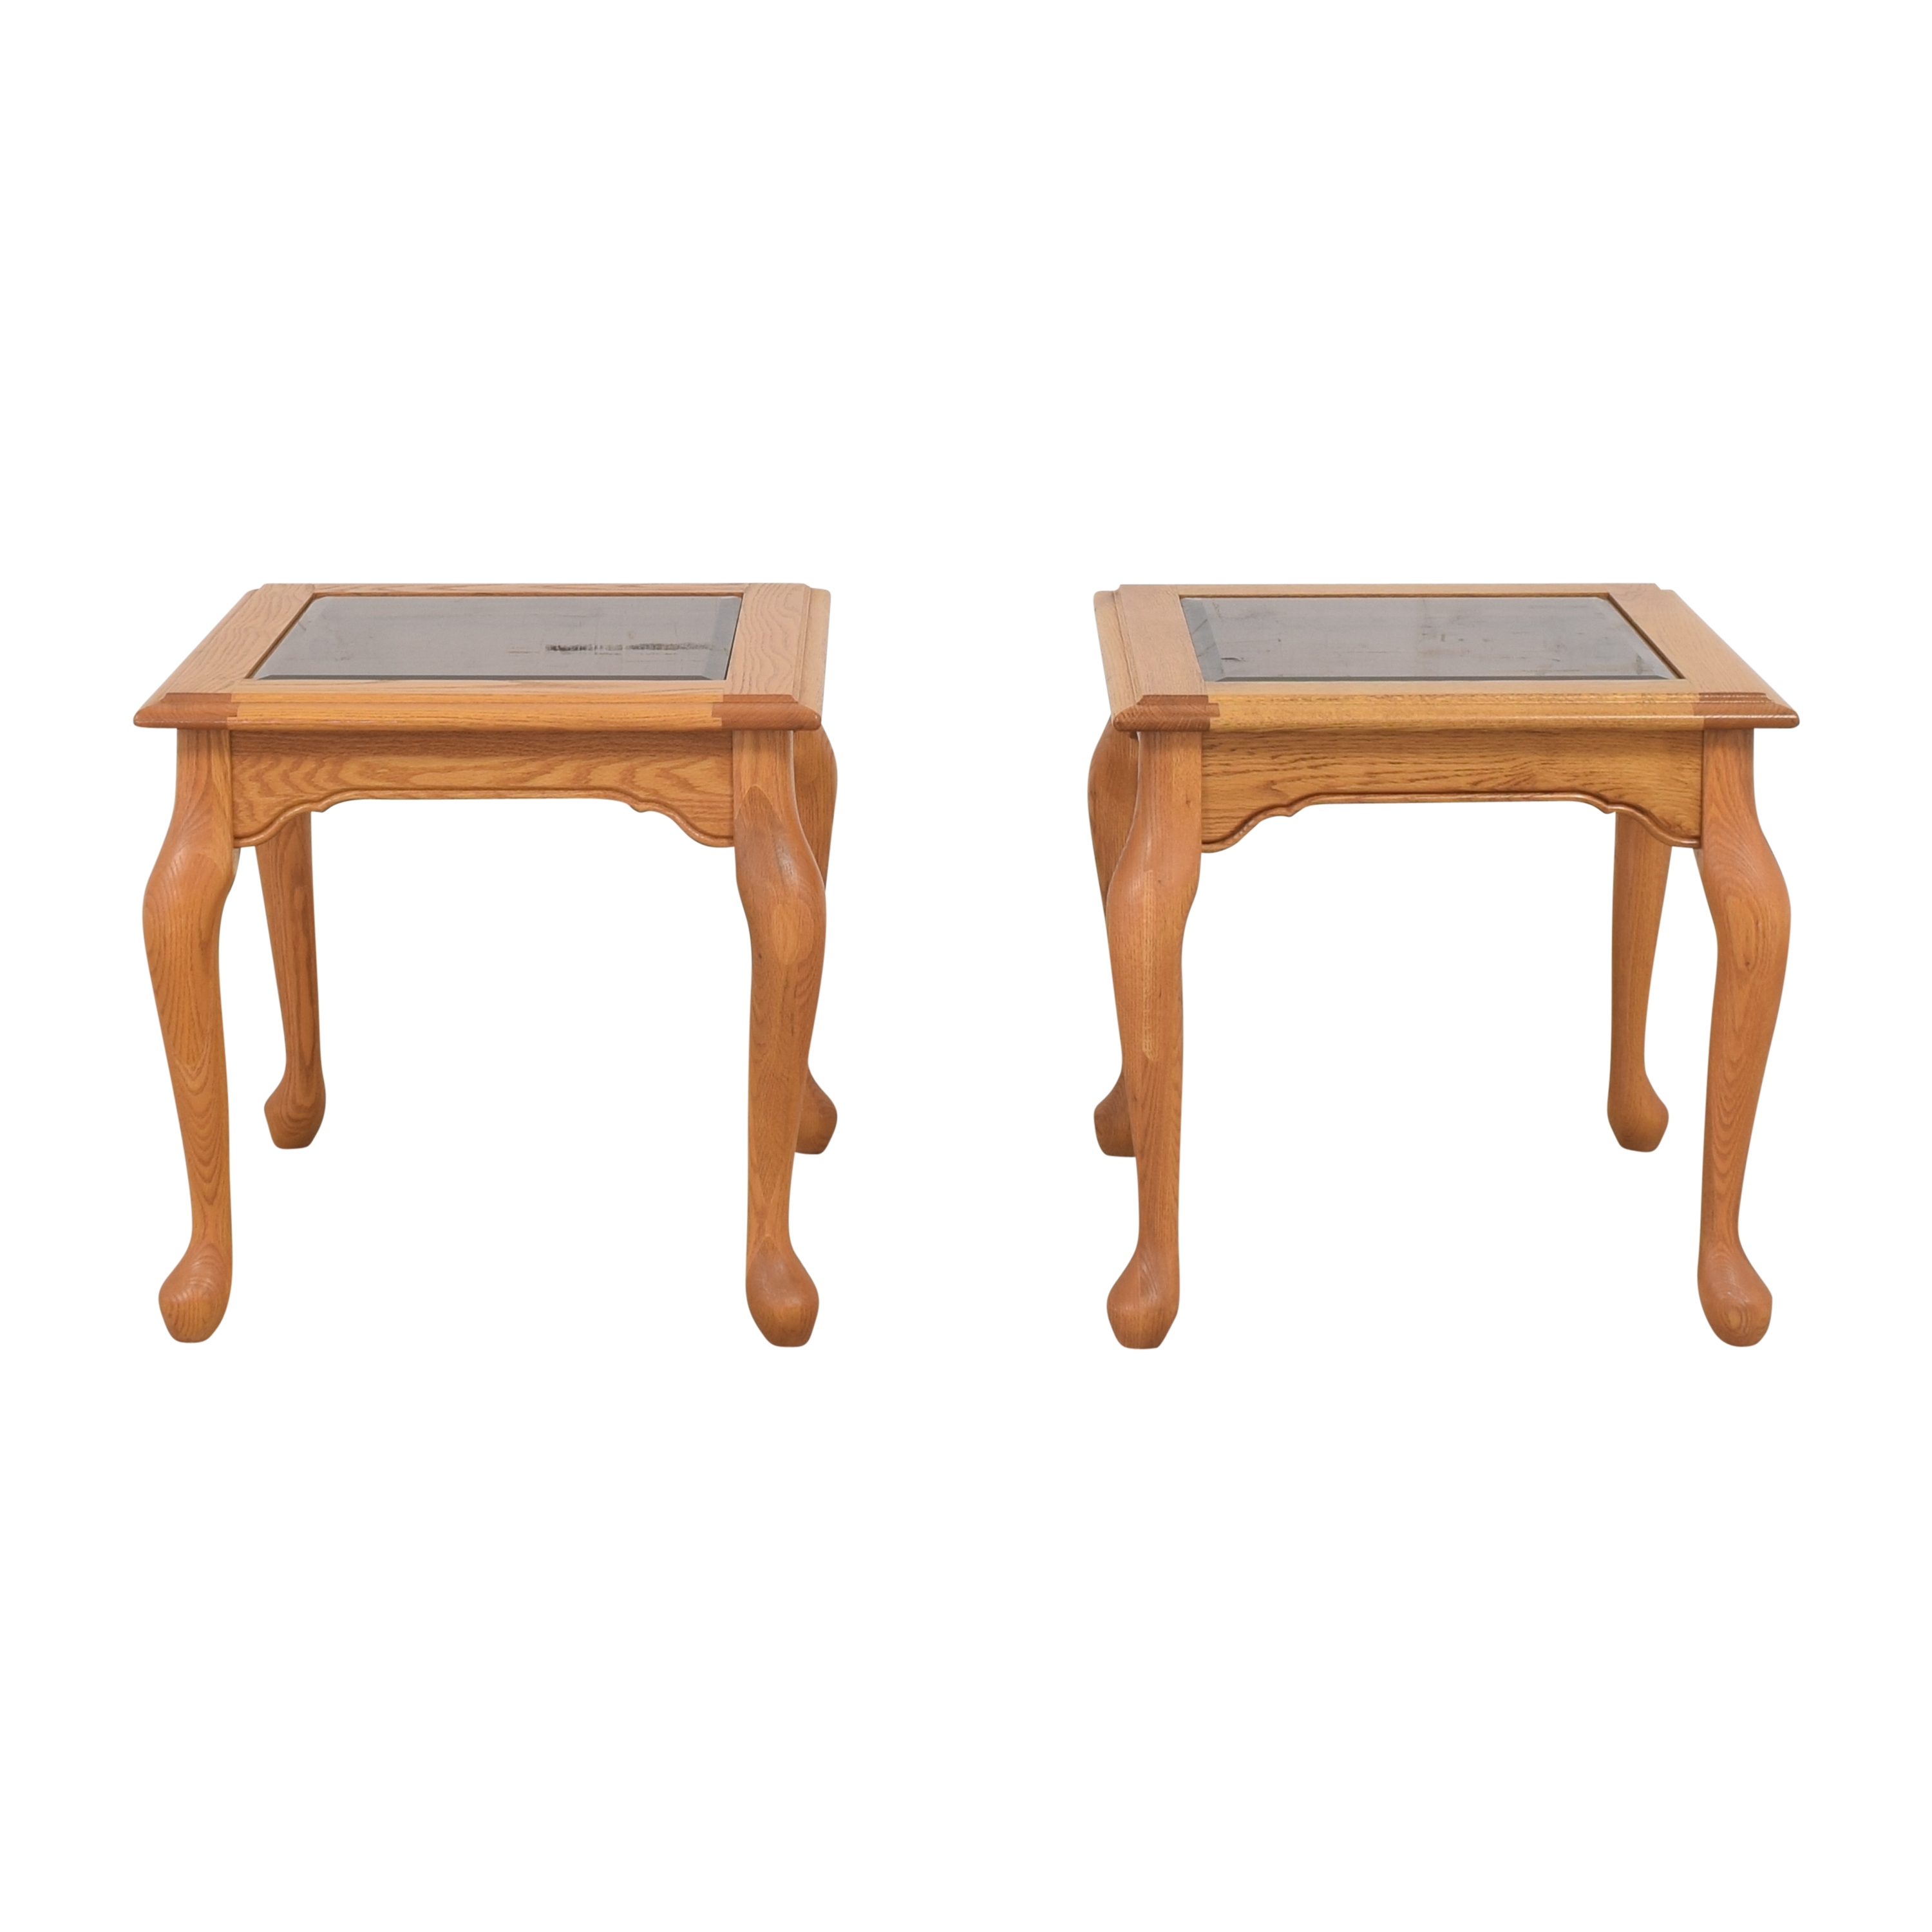 Heirloom Furniture Square End Tables / Tables